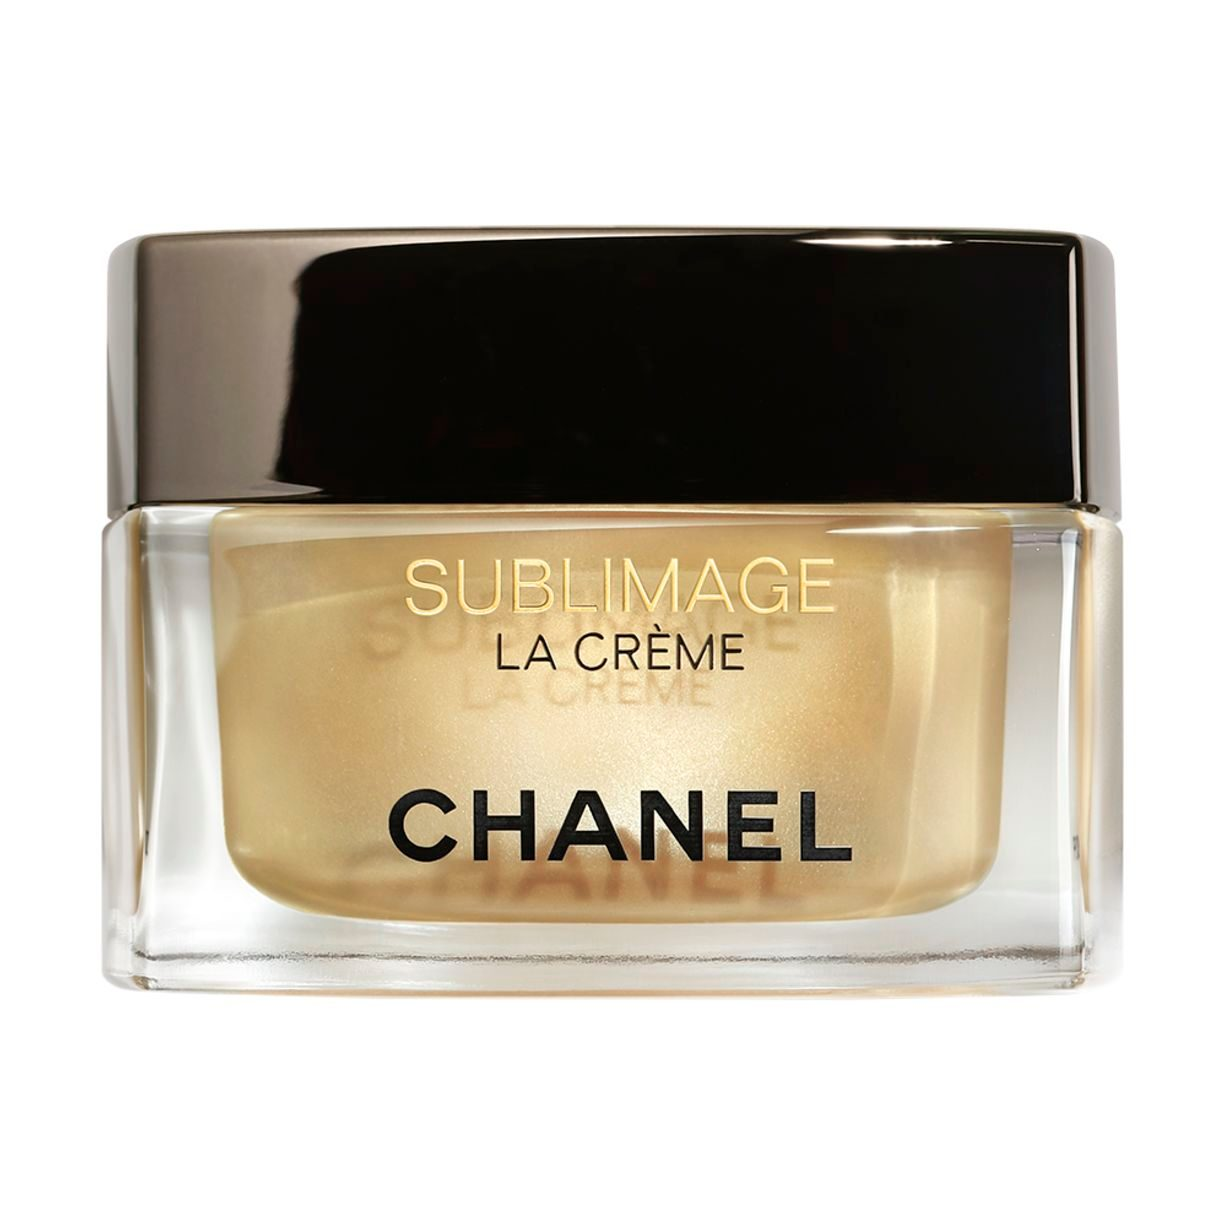 SUBLIMAGE LA CRÈME ULTIMATE SKIN REVITALIZATION 50g